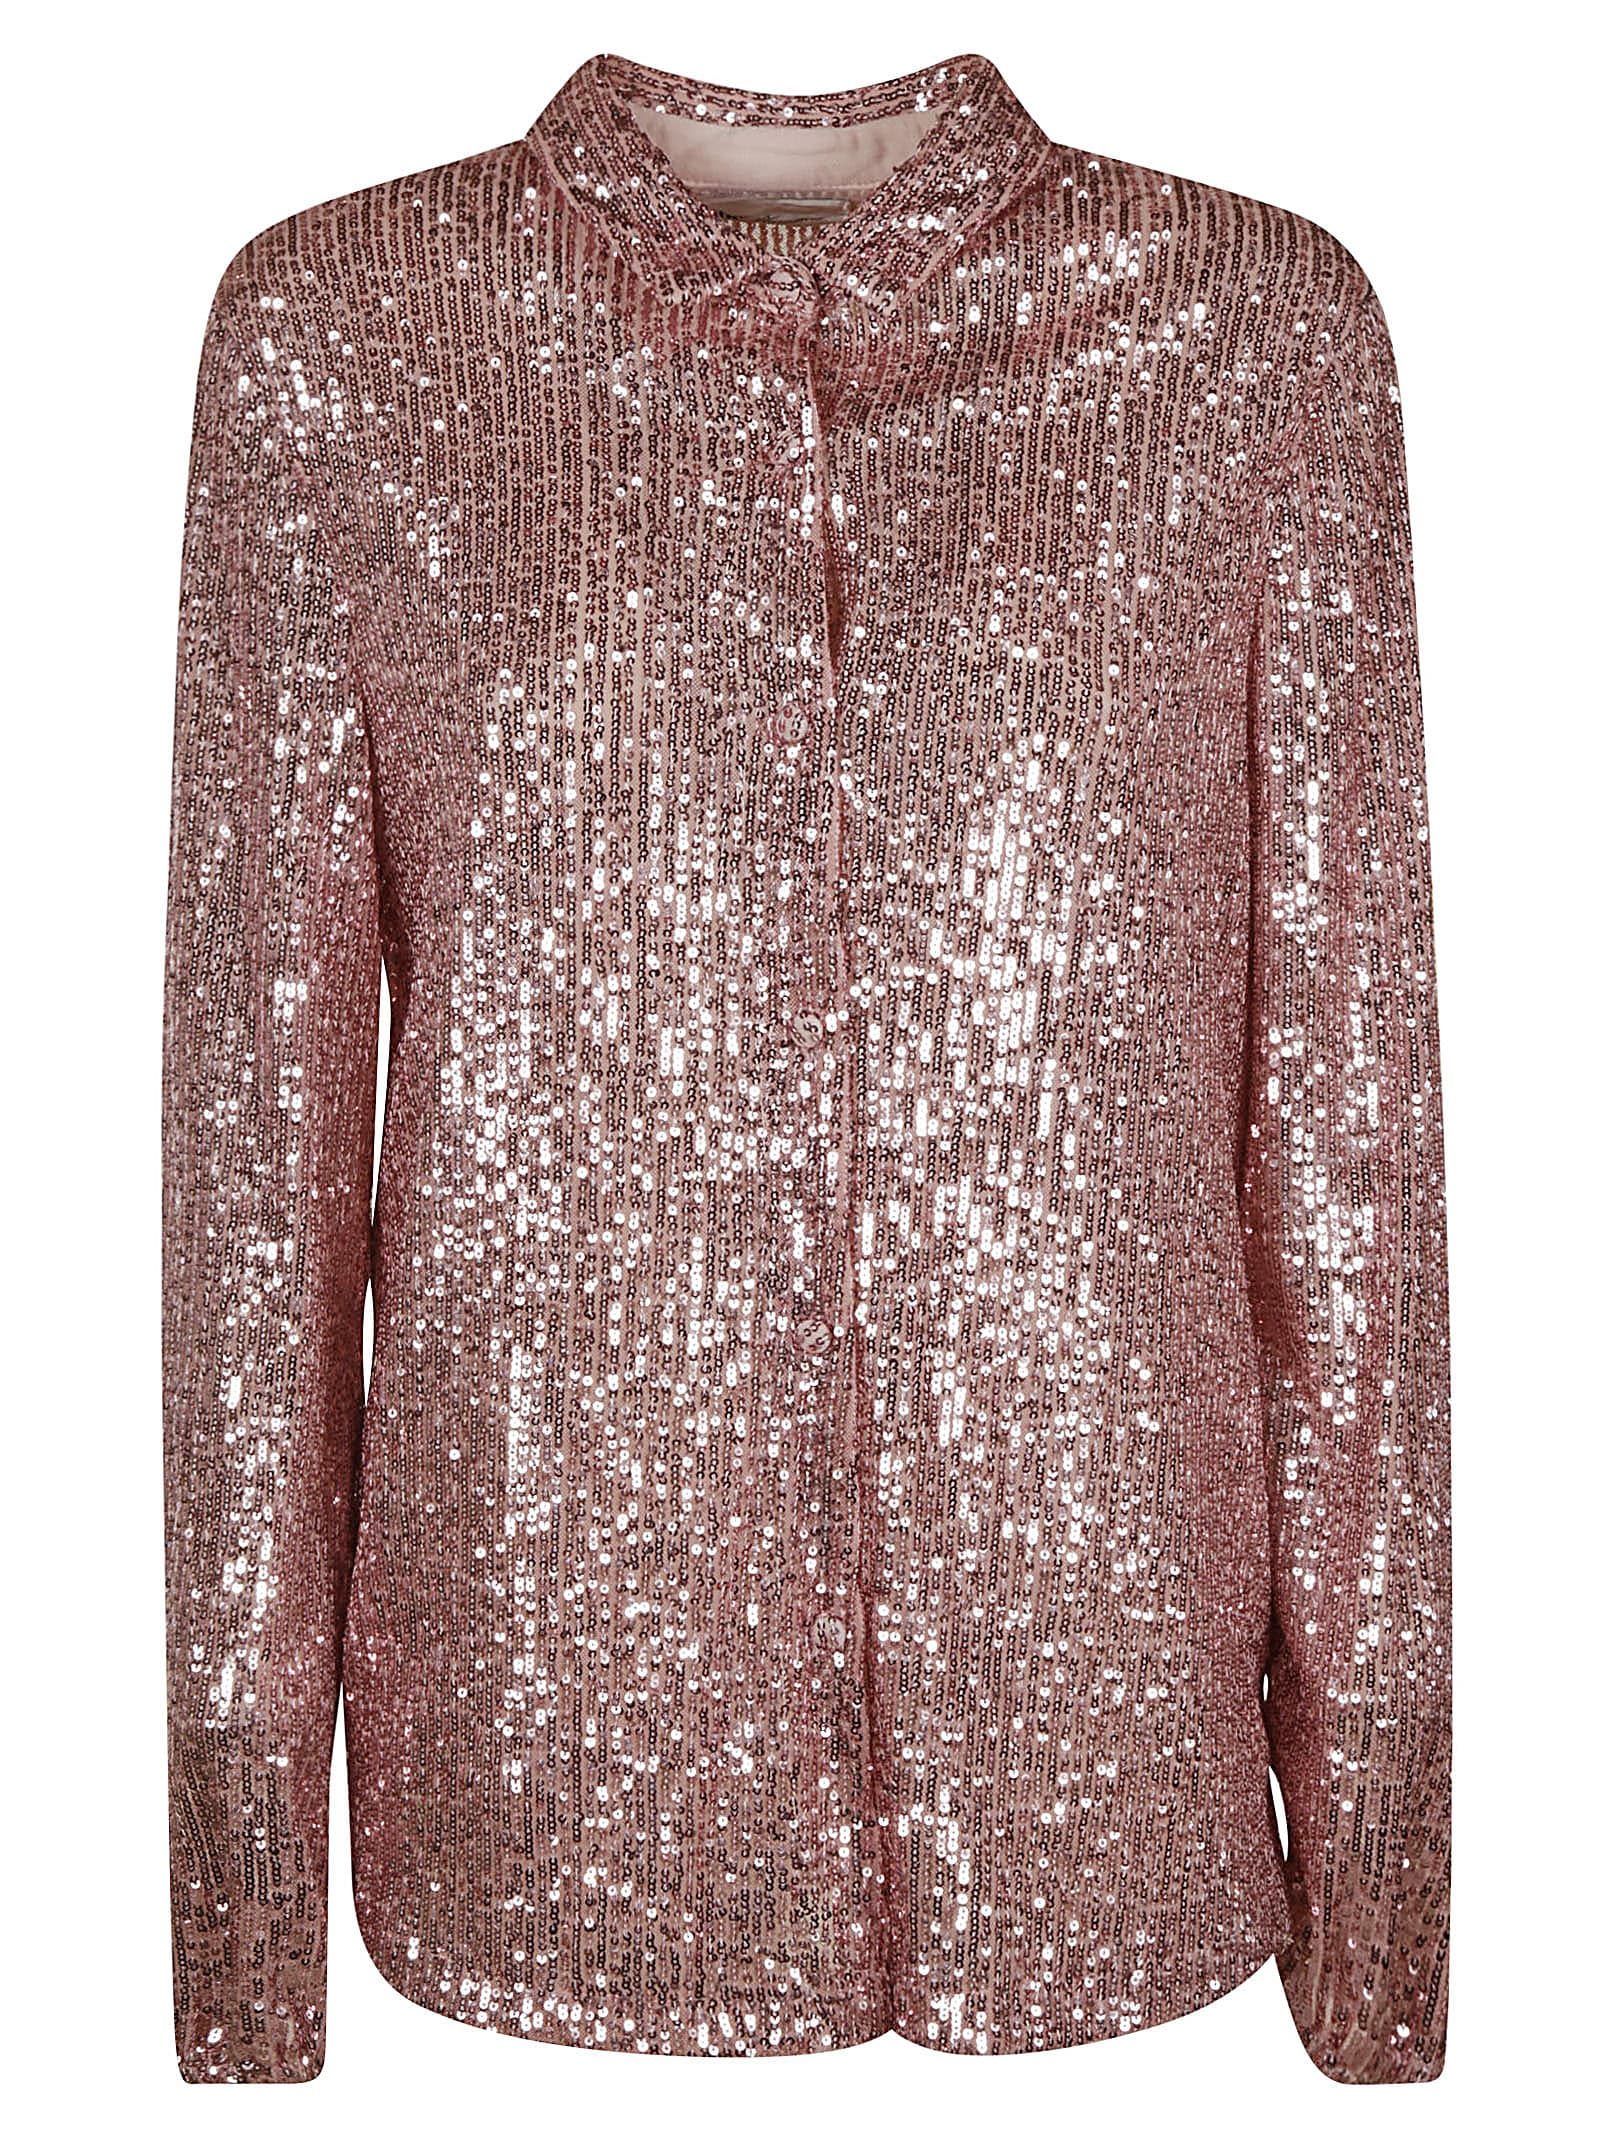 Sequin-coated Shirt